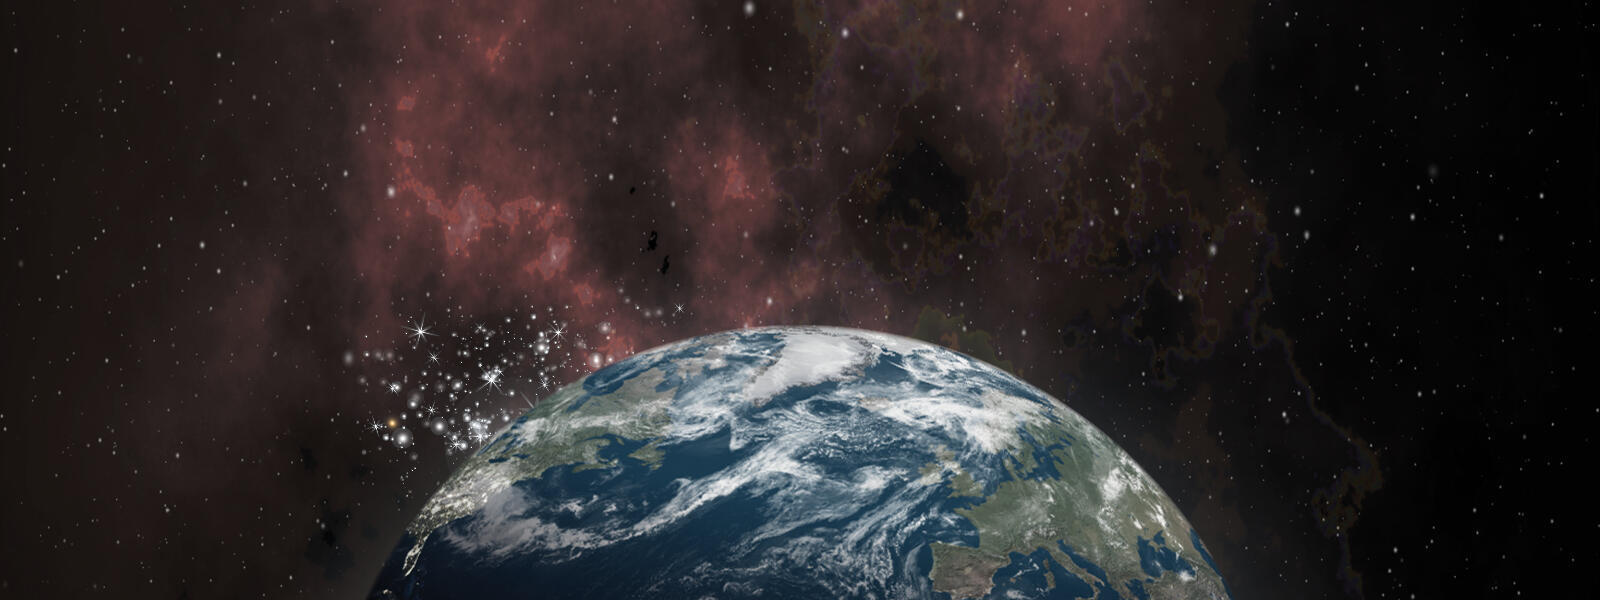 Planet Earth against a background of stars and space